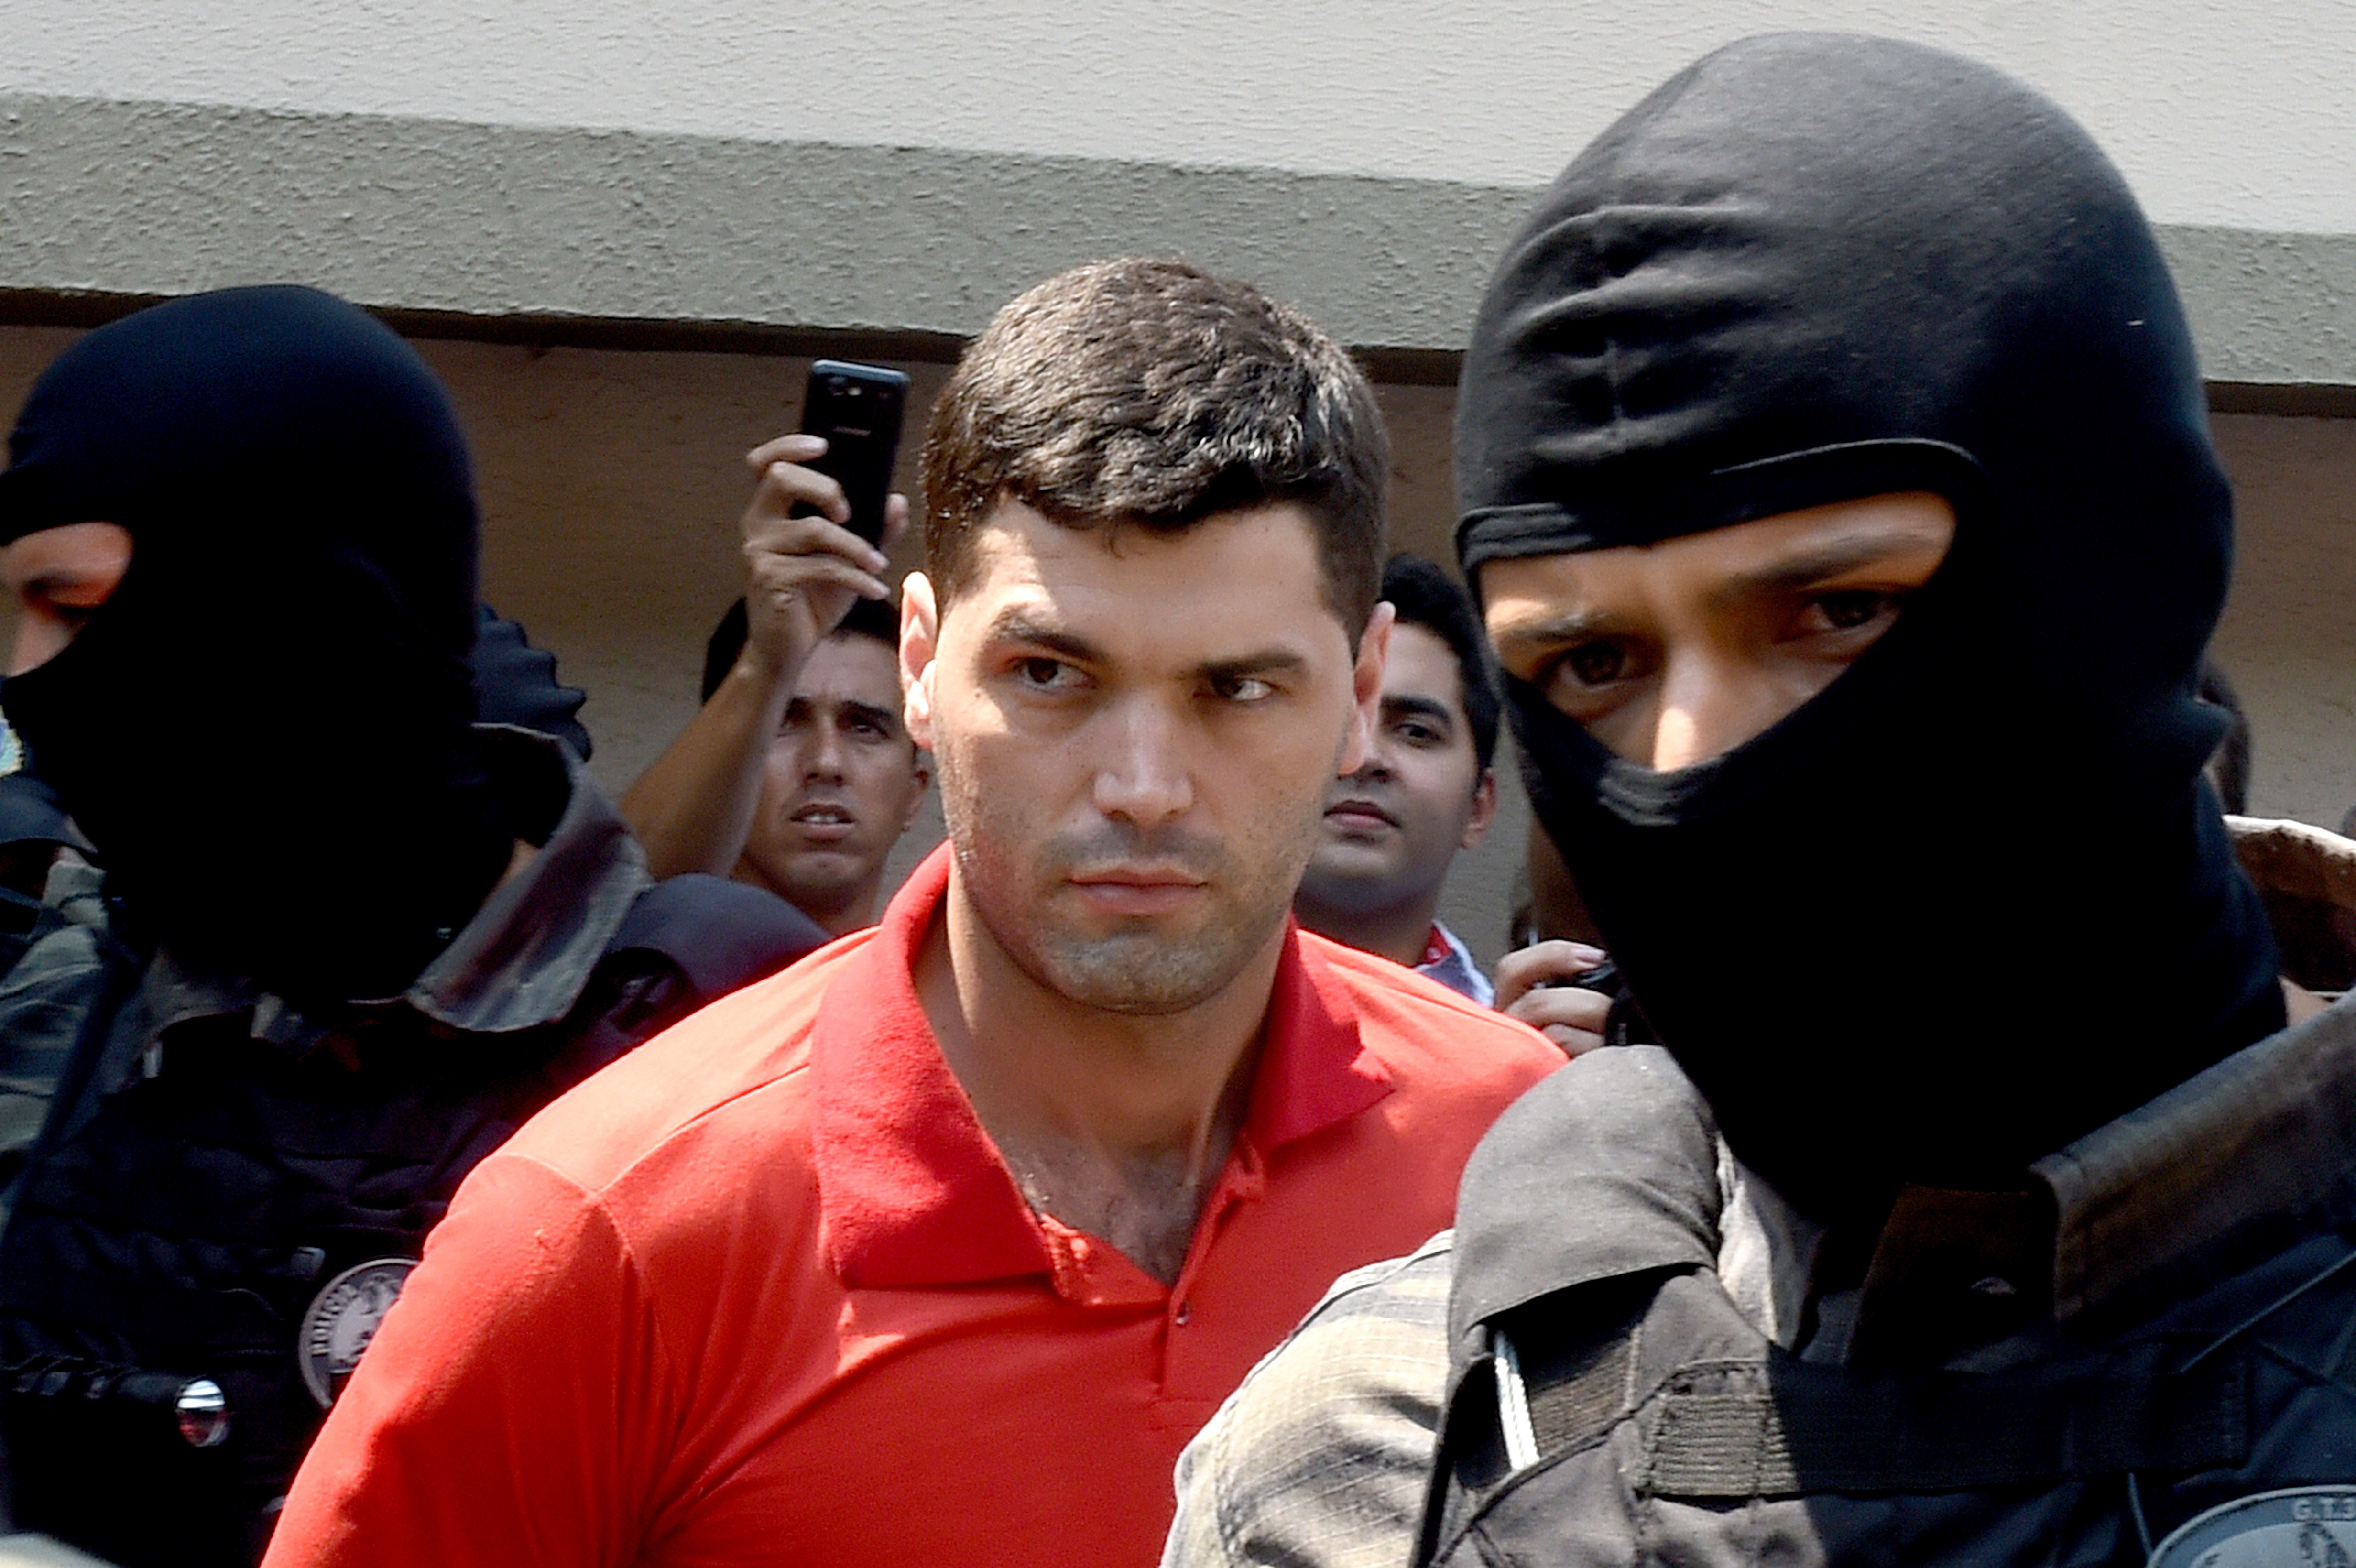 Alleged serial killer Tiago Gomes da Rocha, center, suspected of killing 39 people, is escorted by police officers at the Department of Security, a day after his arrest, in Goiania, state of Goias, Brazil, on Oct. 16, 2014.